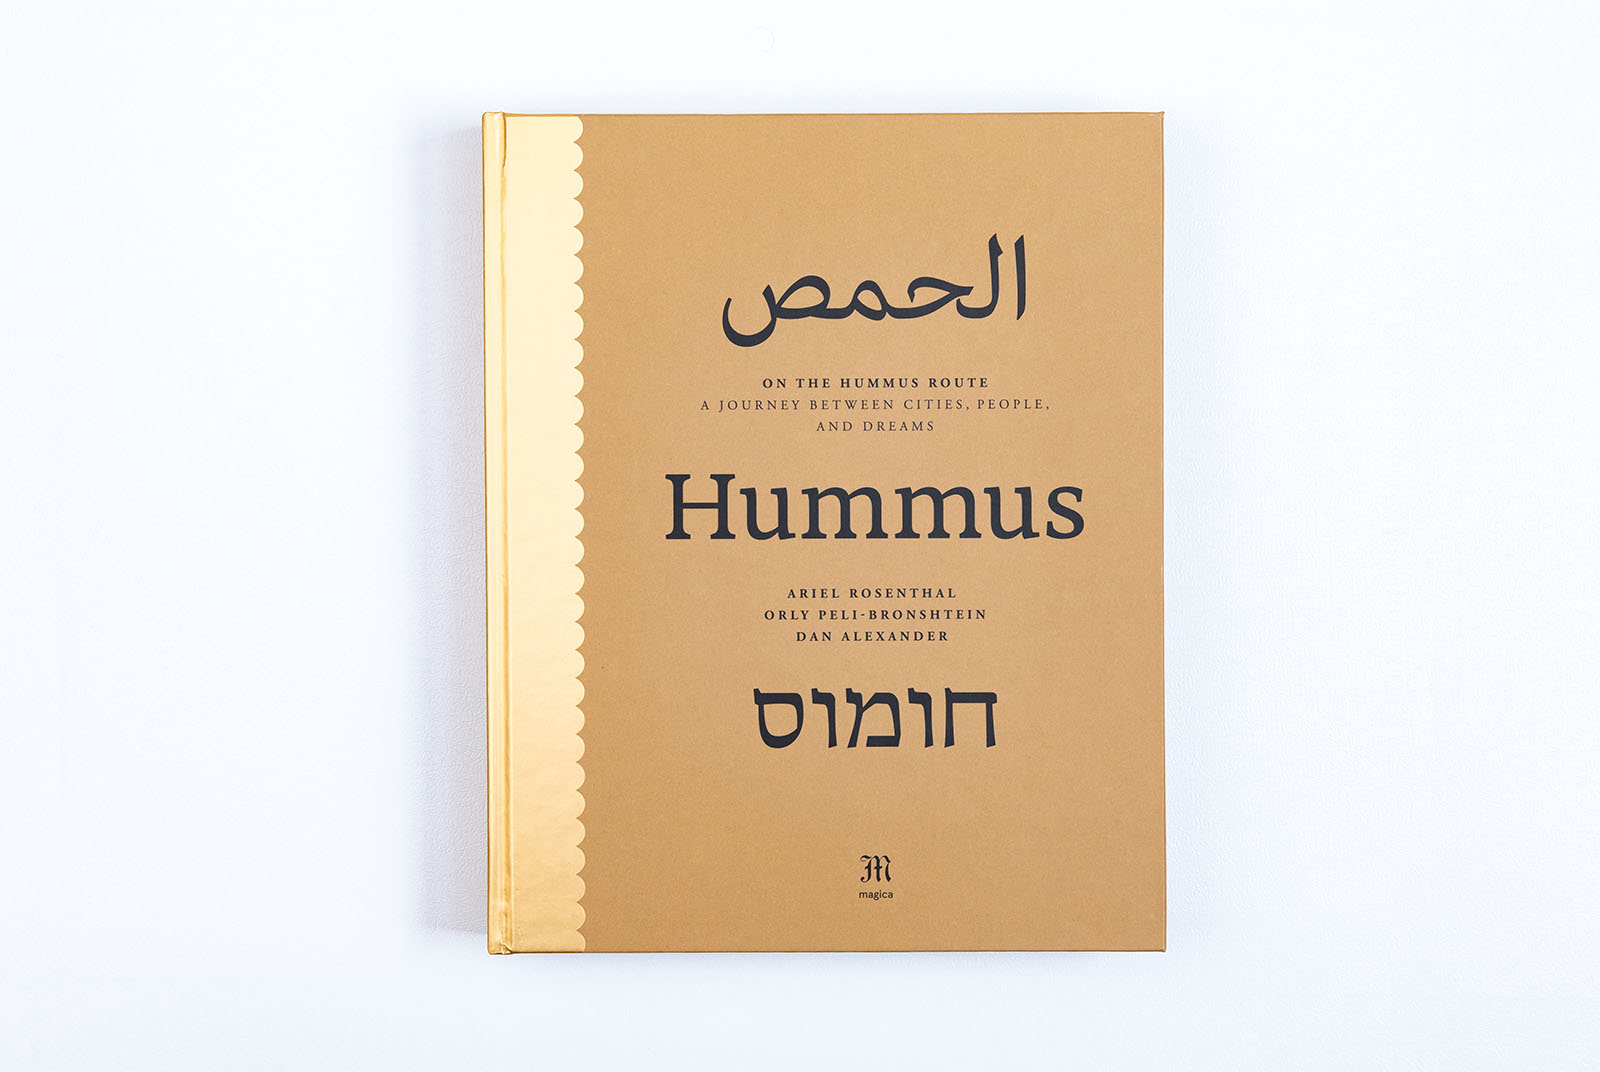 Anna-marie Ravitzki | On the Hummus Route - Book Cover